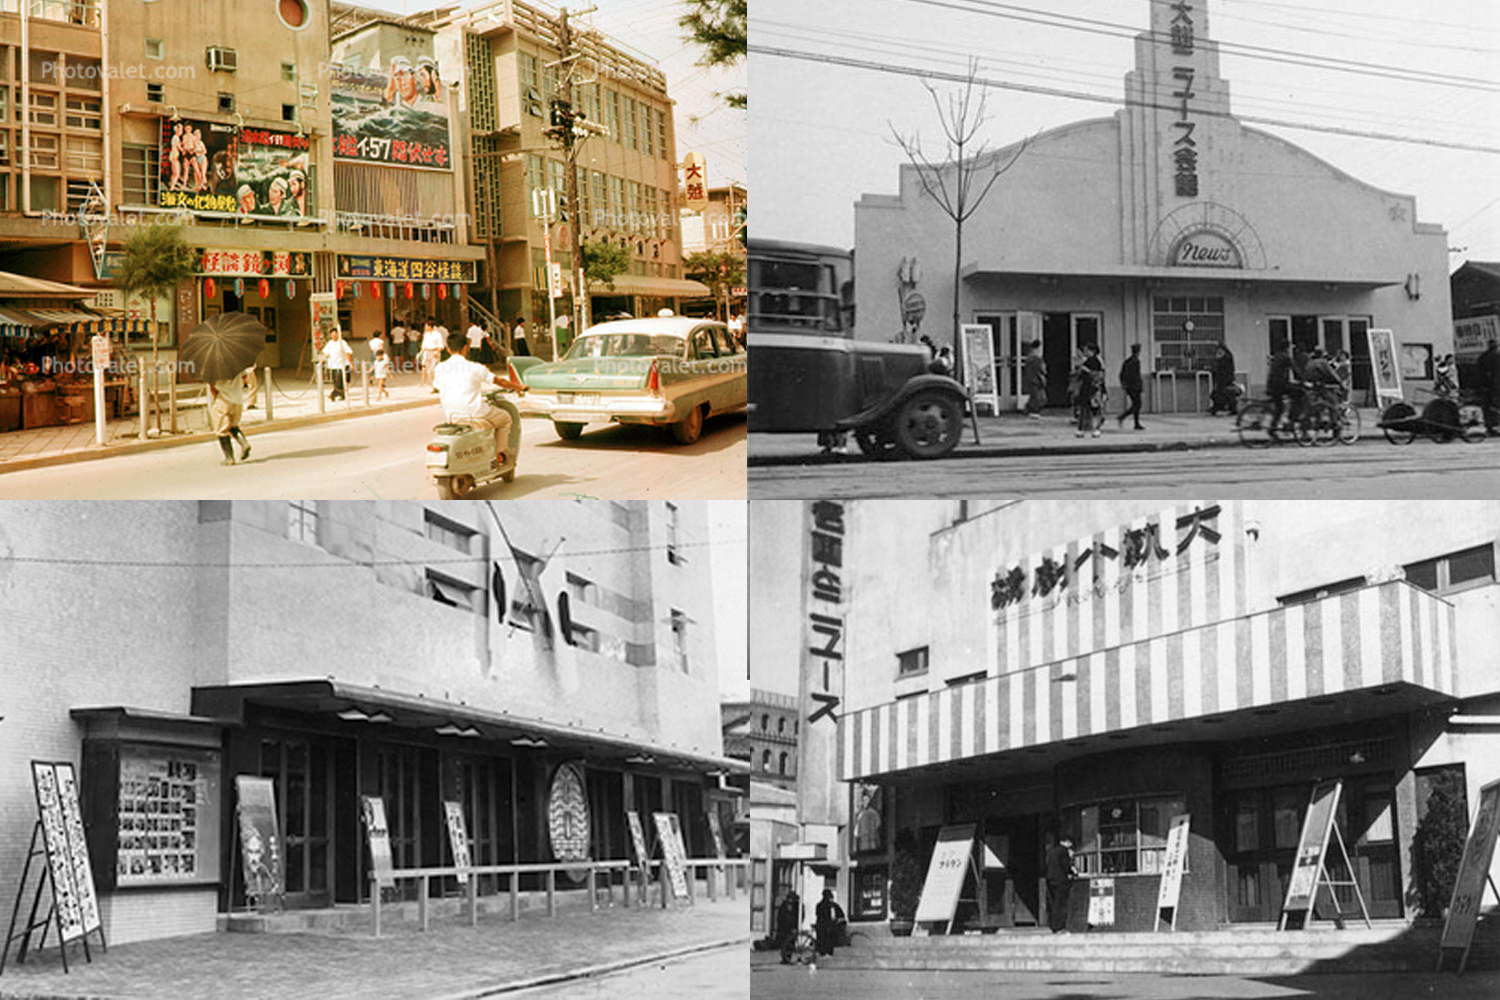 Historic photos of Japanese movie theaters showing STB poster display cases near roadsides